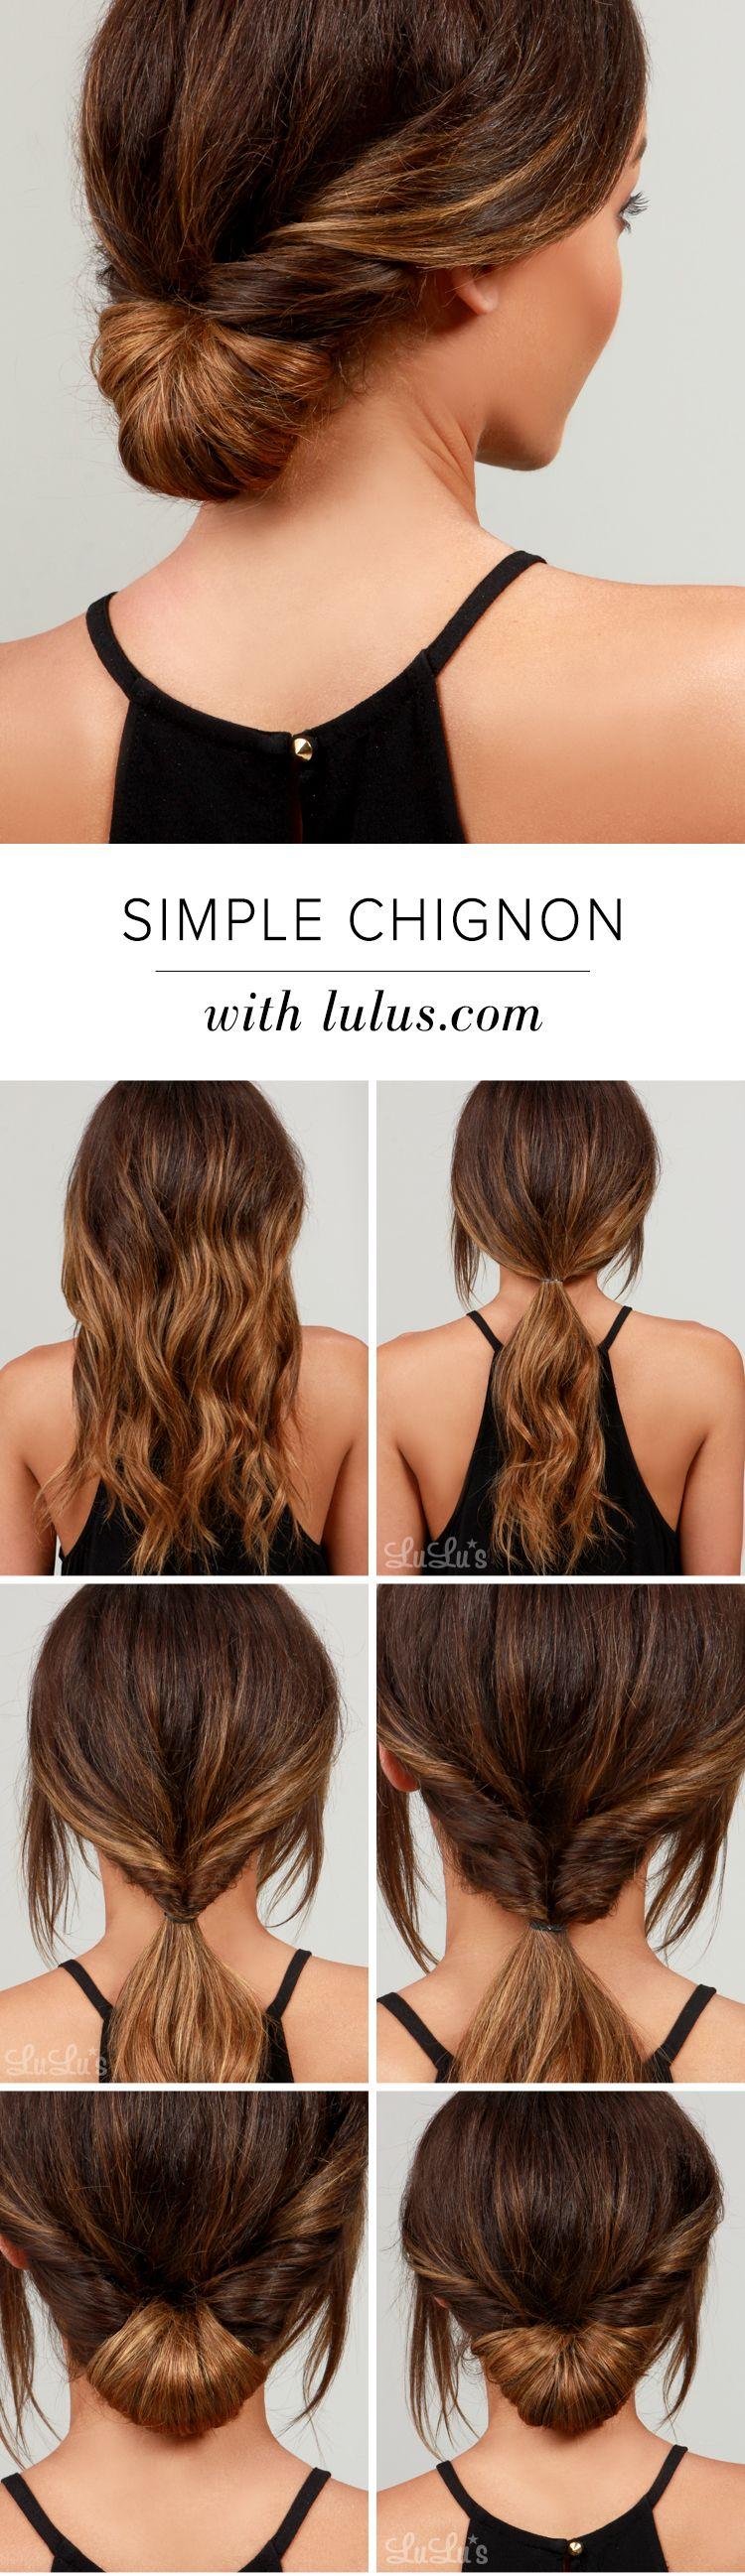 Lulus howto simple chignon hair tutorial chignon hair chignons